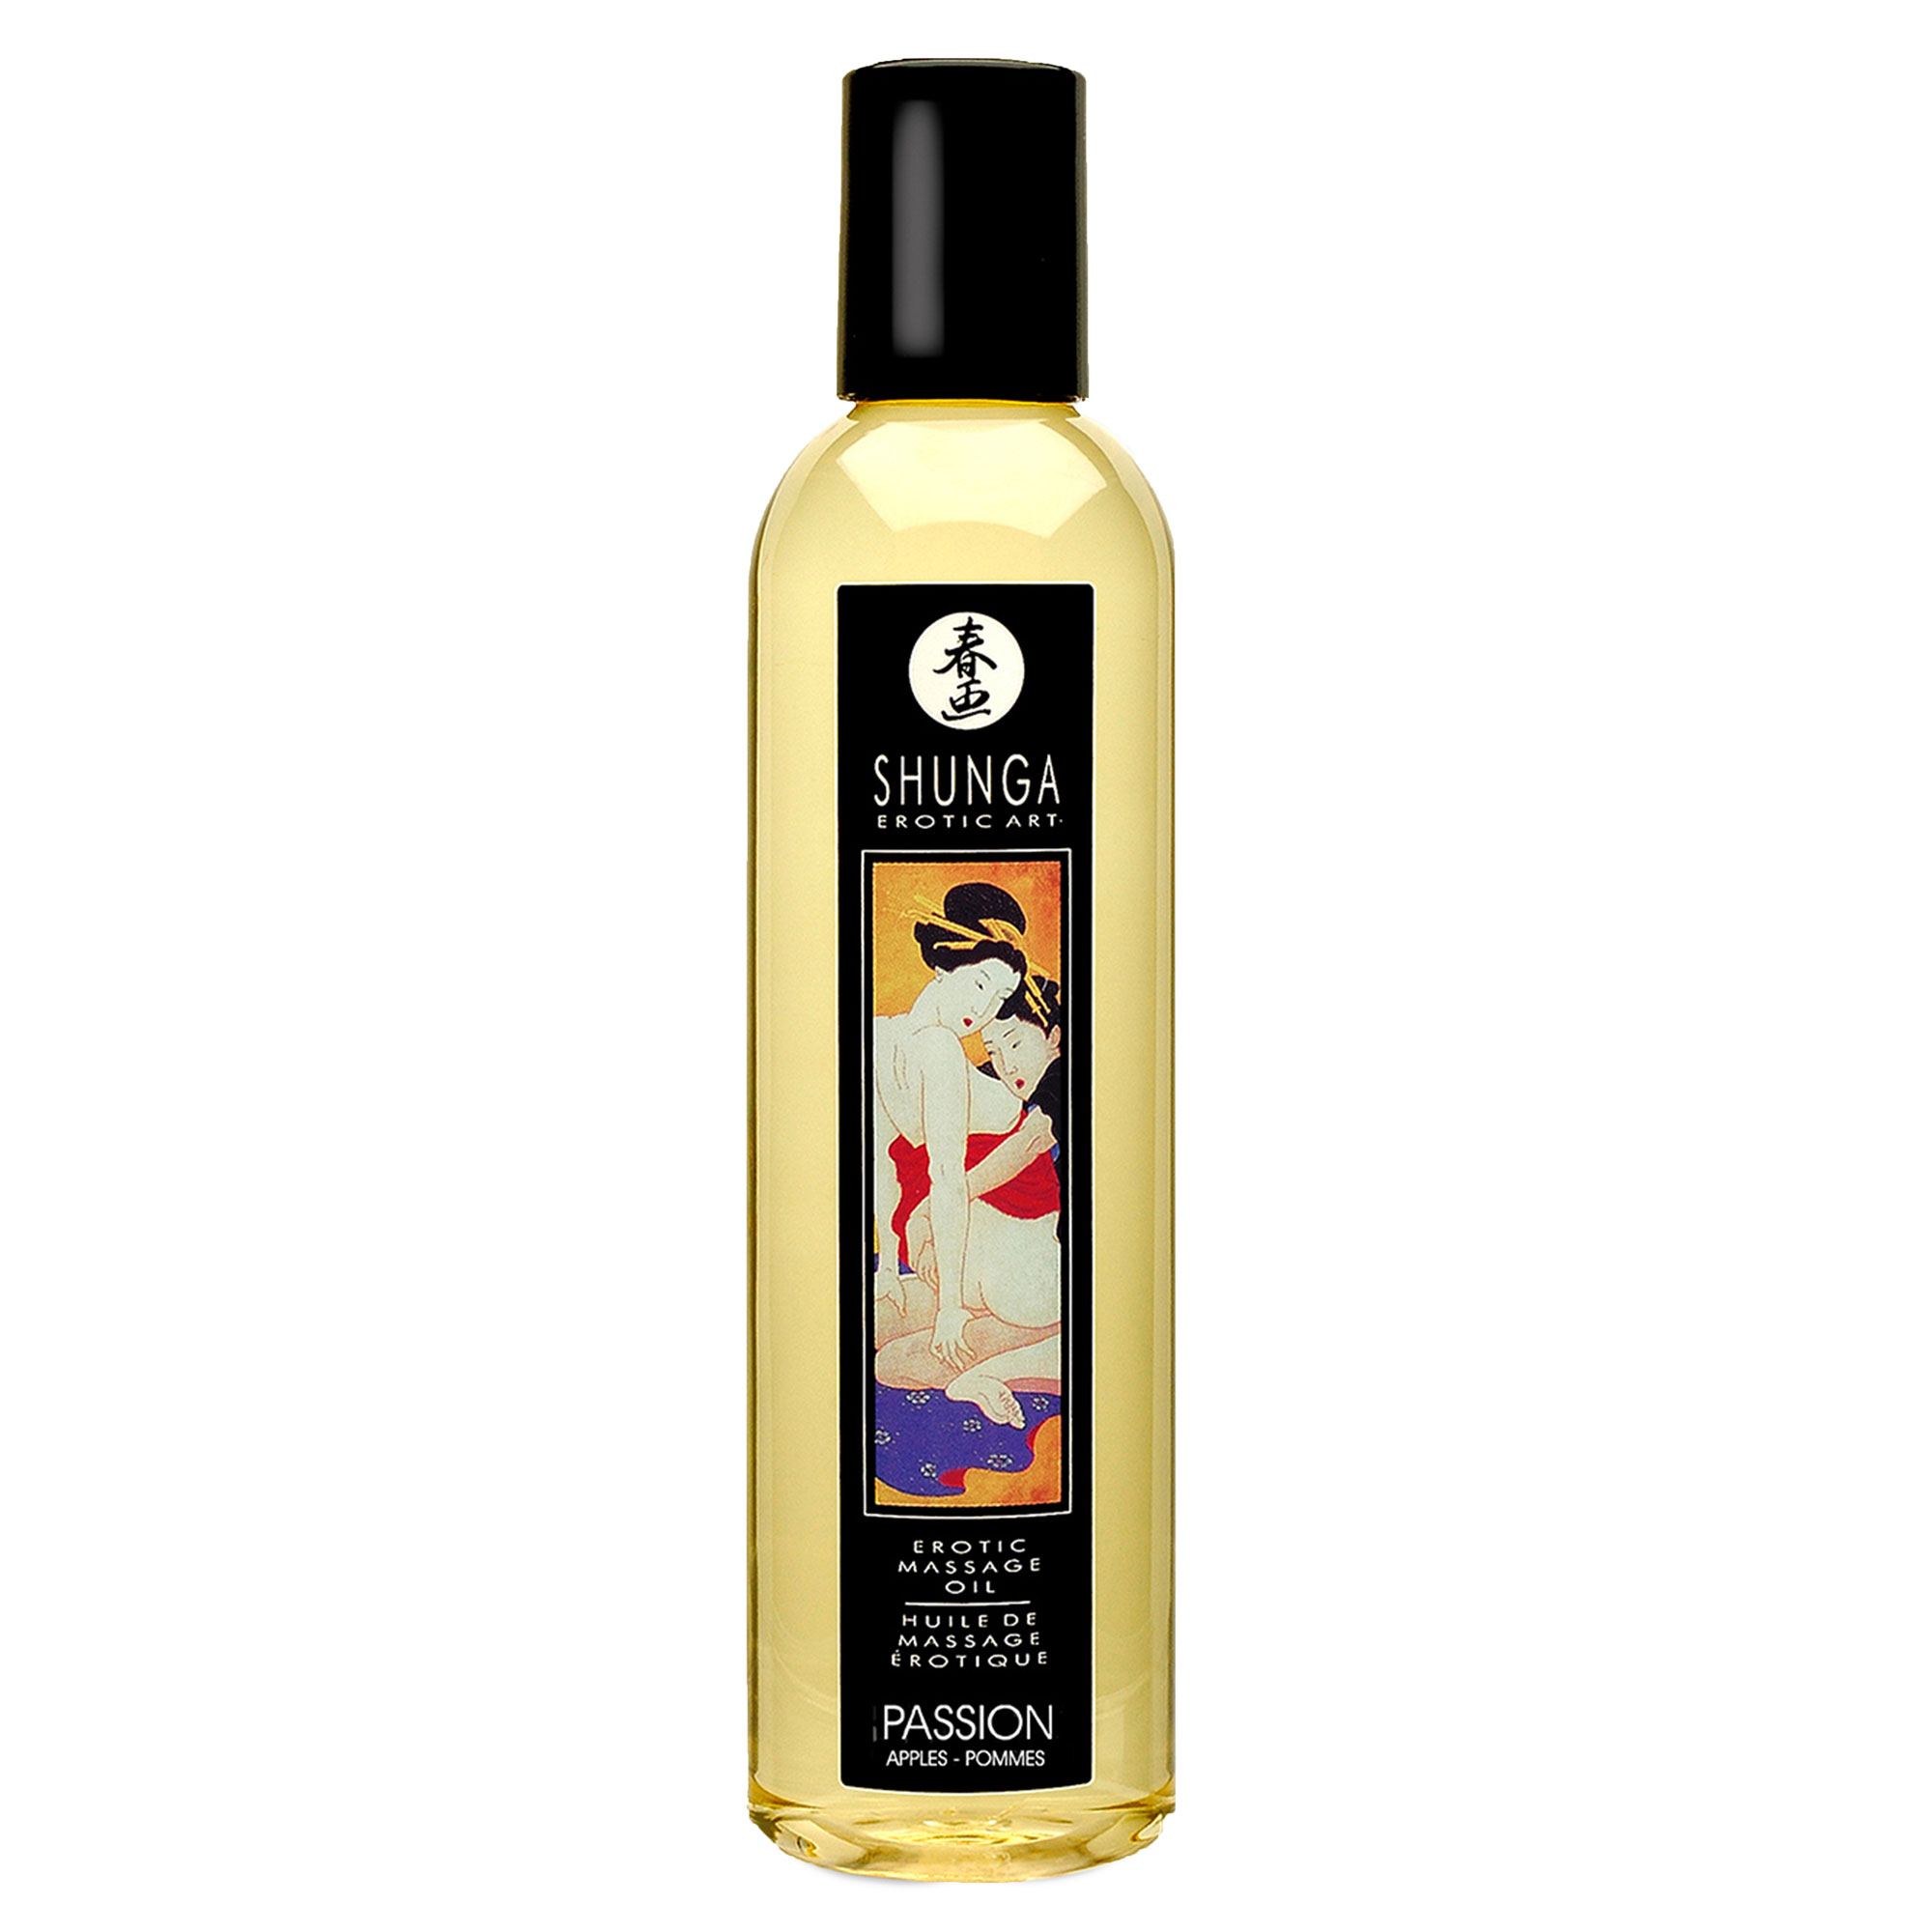 Shunga Massage Oil Passion - 250 ml | Apotek, Massage, Massageolja | Intimast.se - Sexleksaker